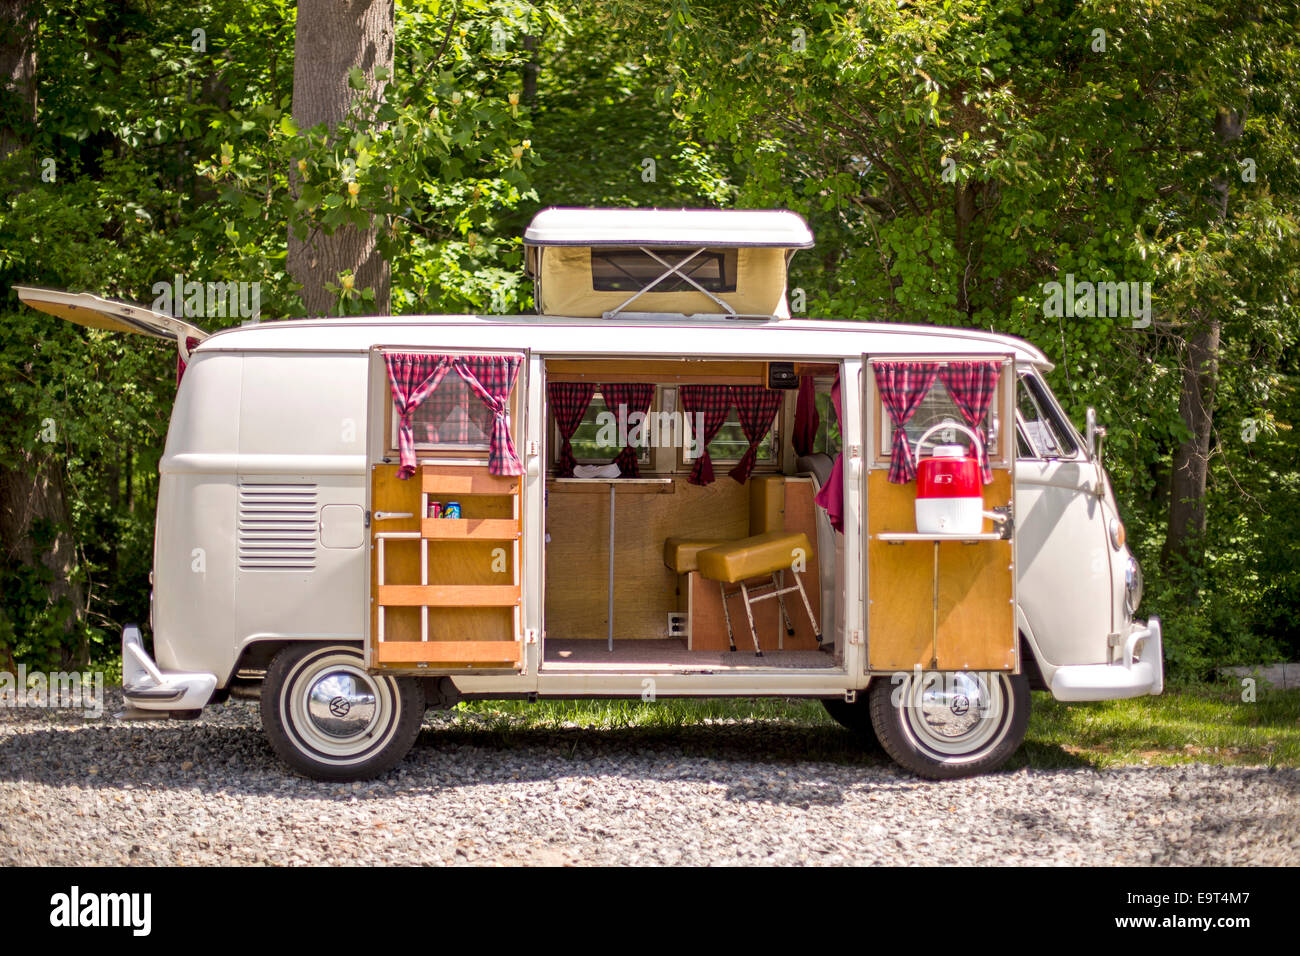 VW Bus - Stock Image